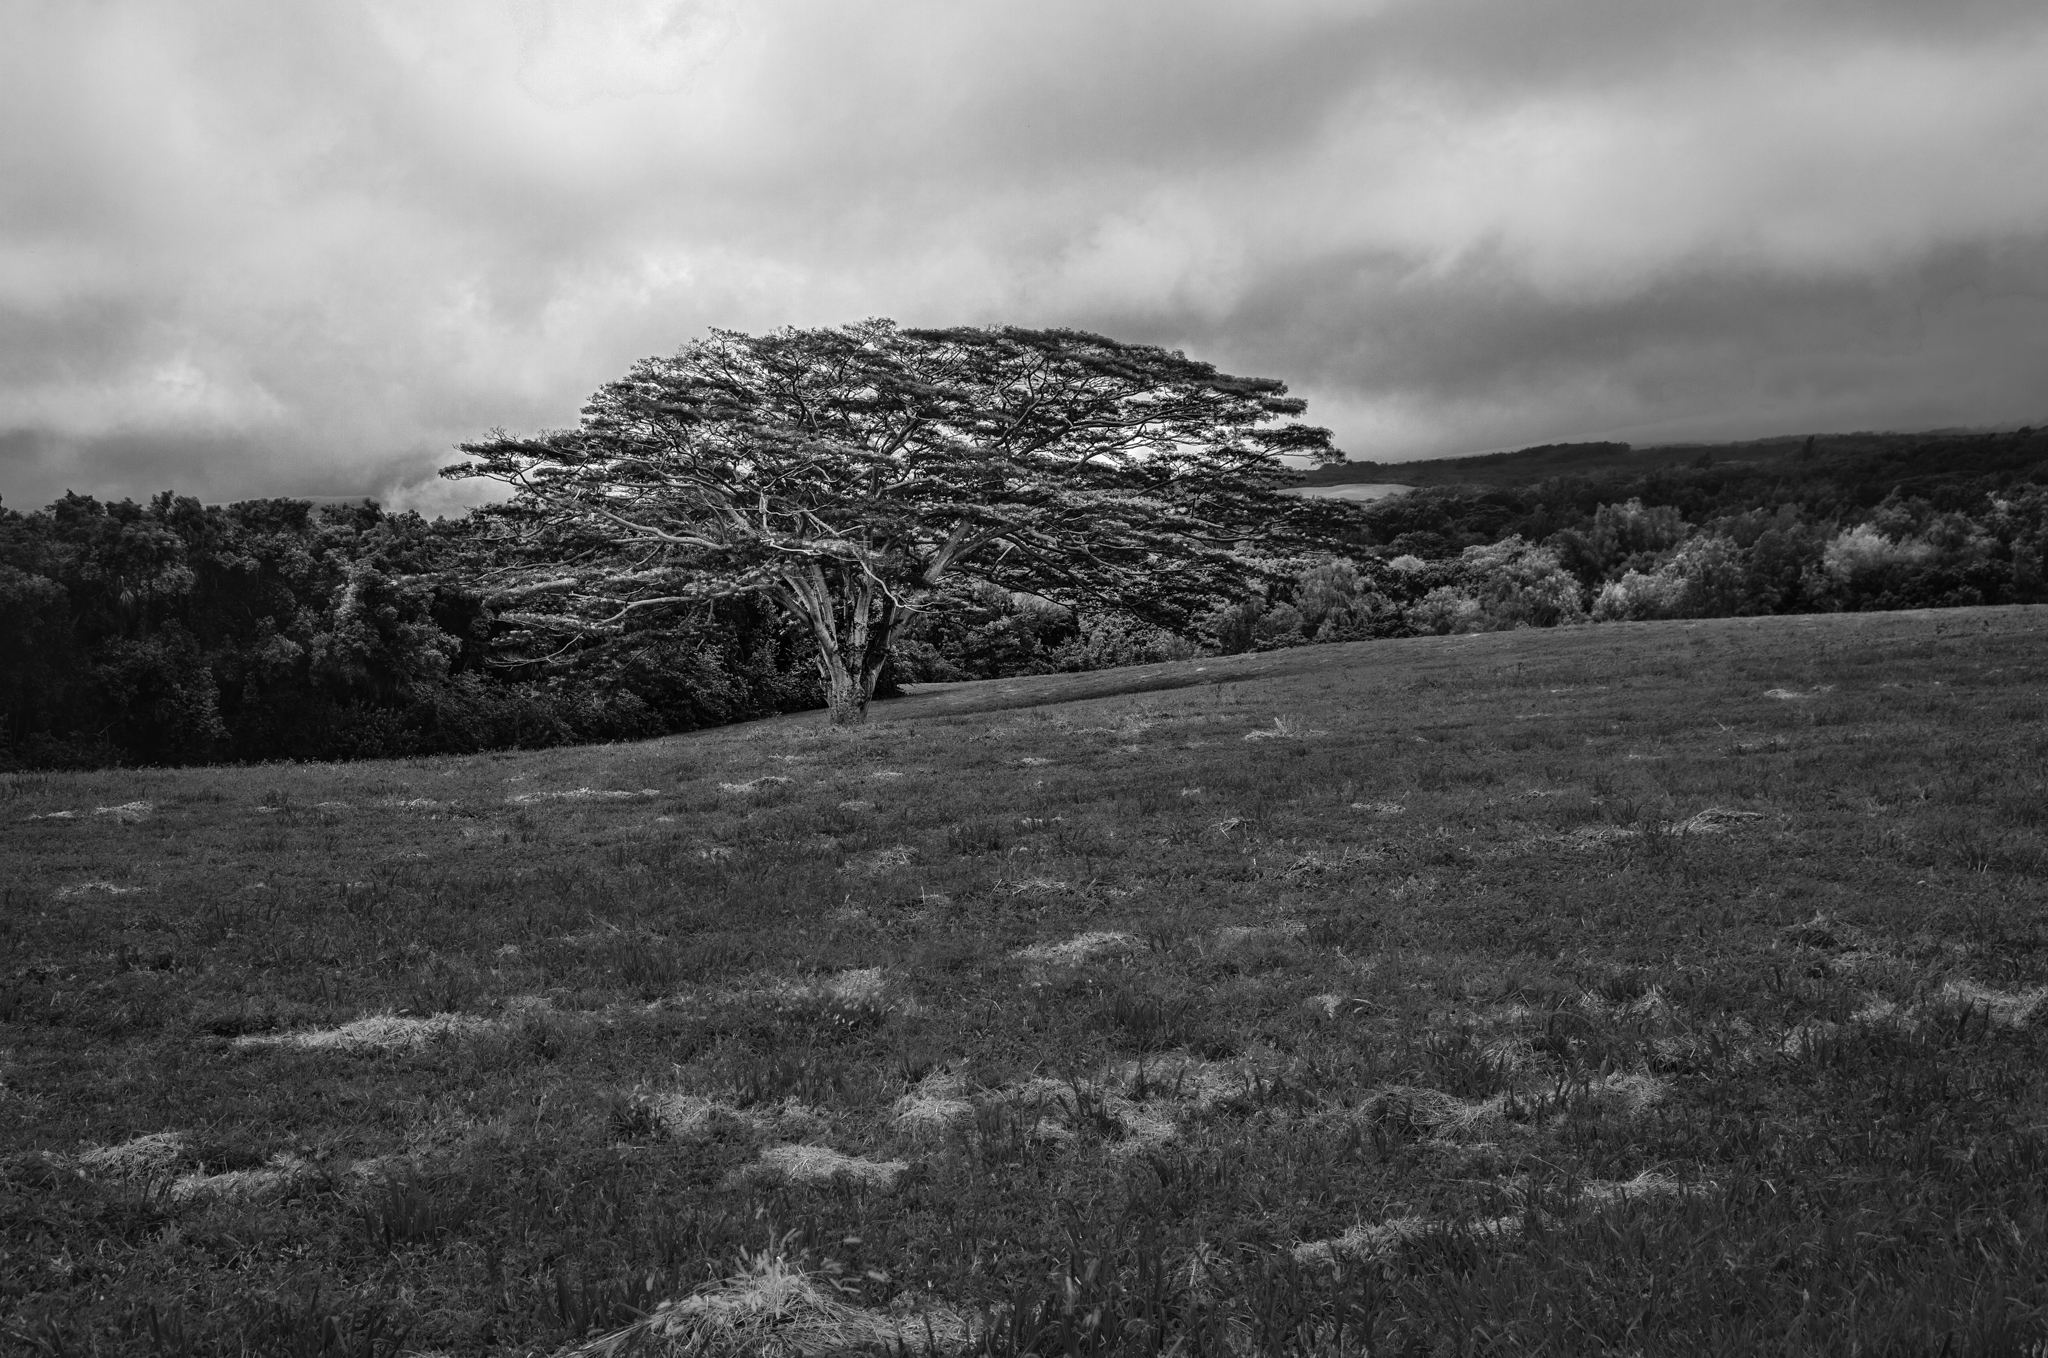 Tree in a Field on Mahukona-Niuli Road - Hawaii - 2009 by Scott Loftesness